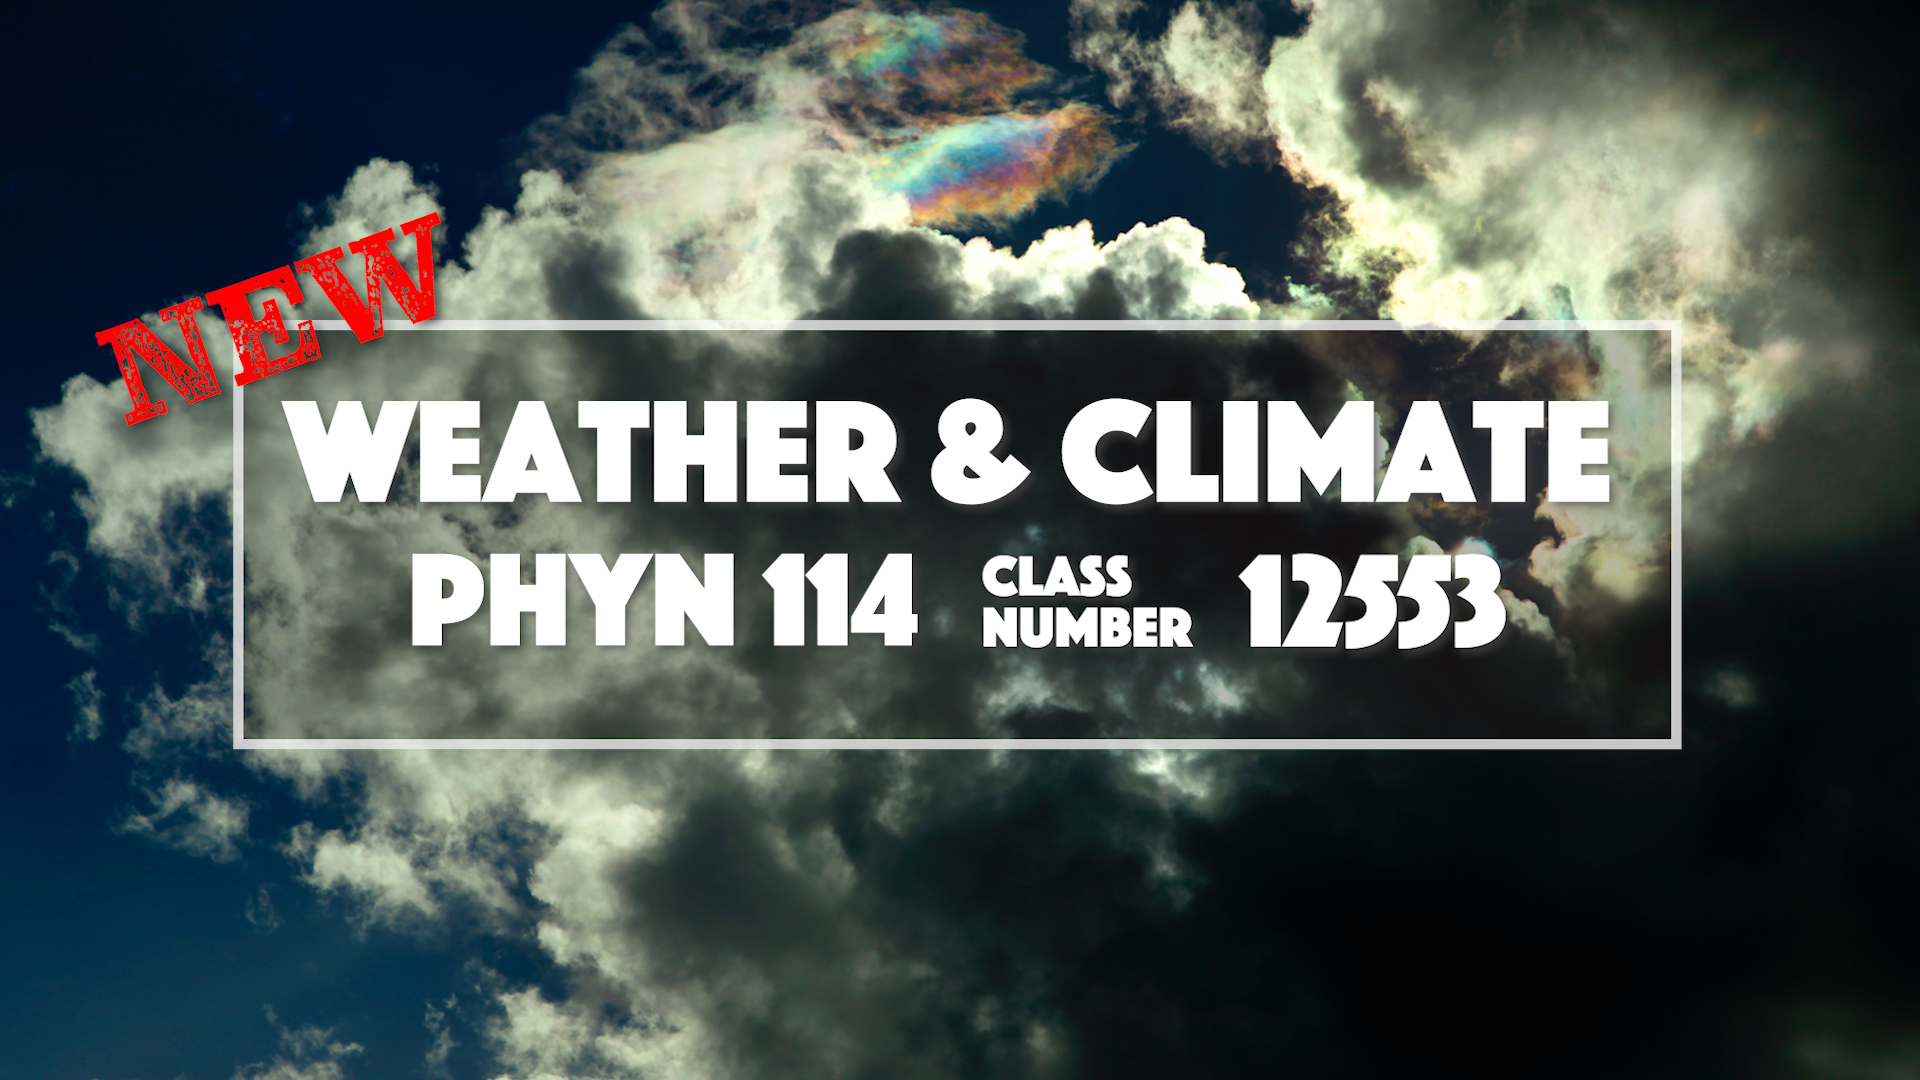 New Weather and Climate class at Miramar College